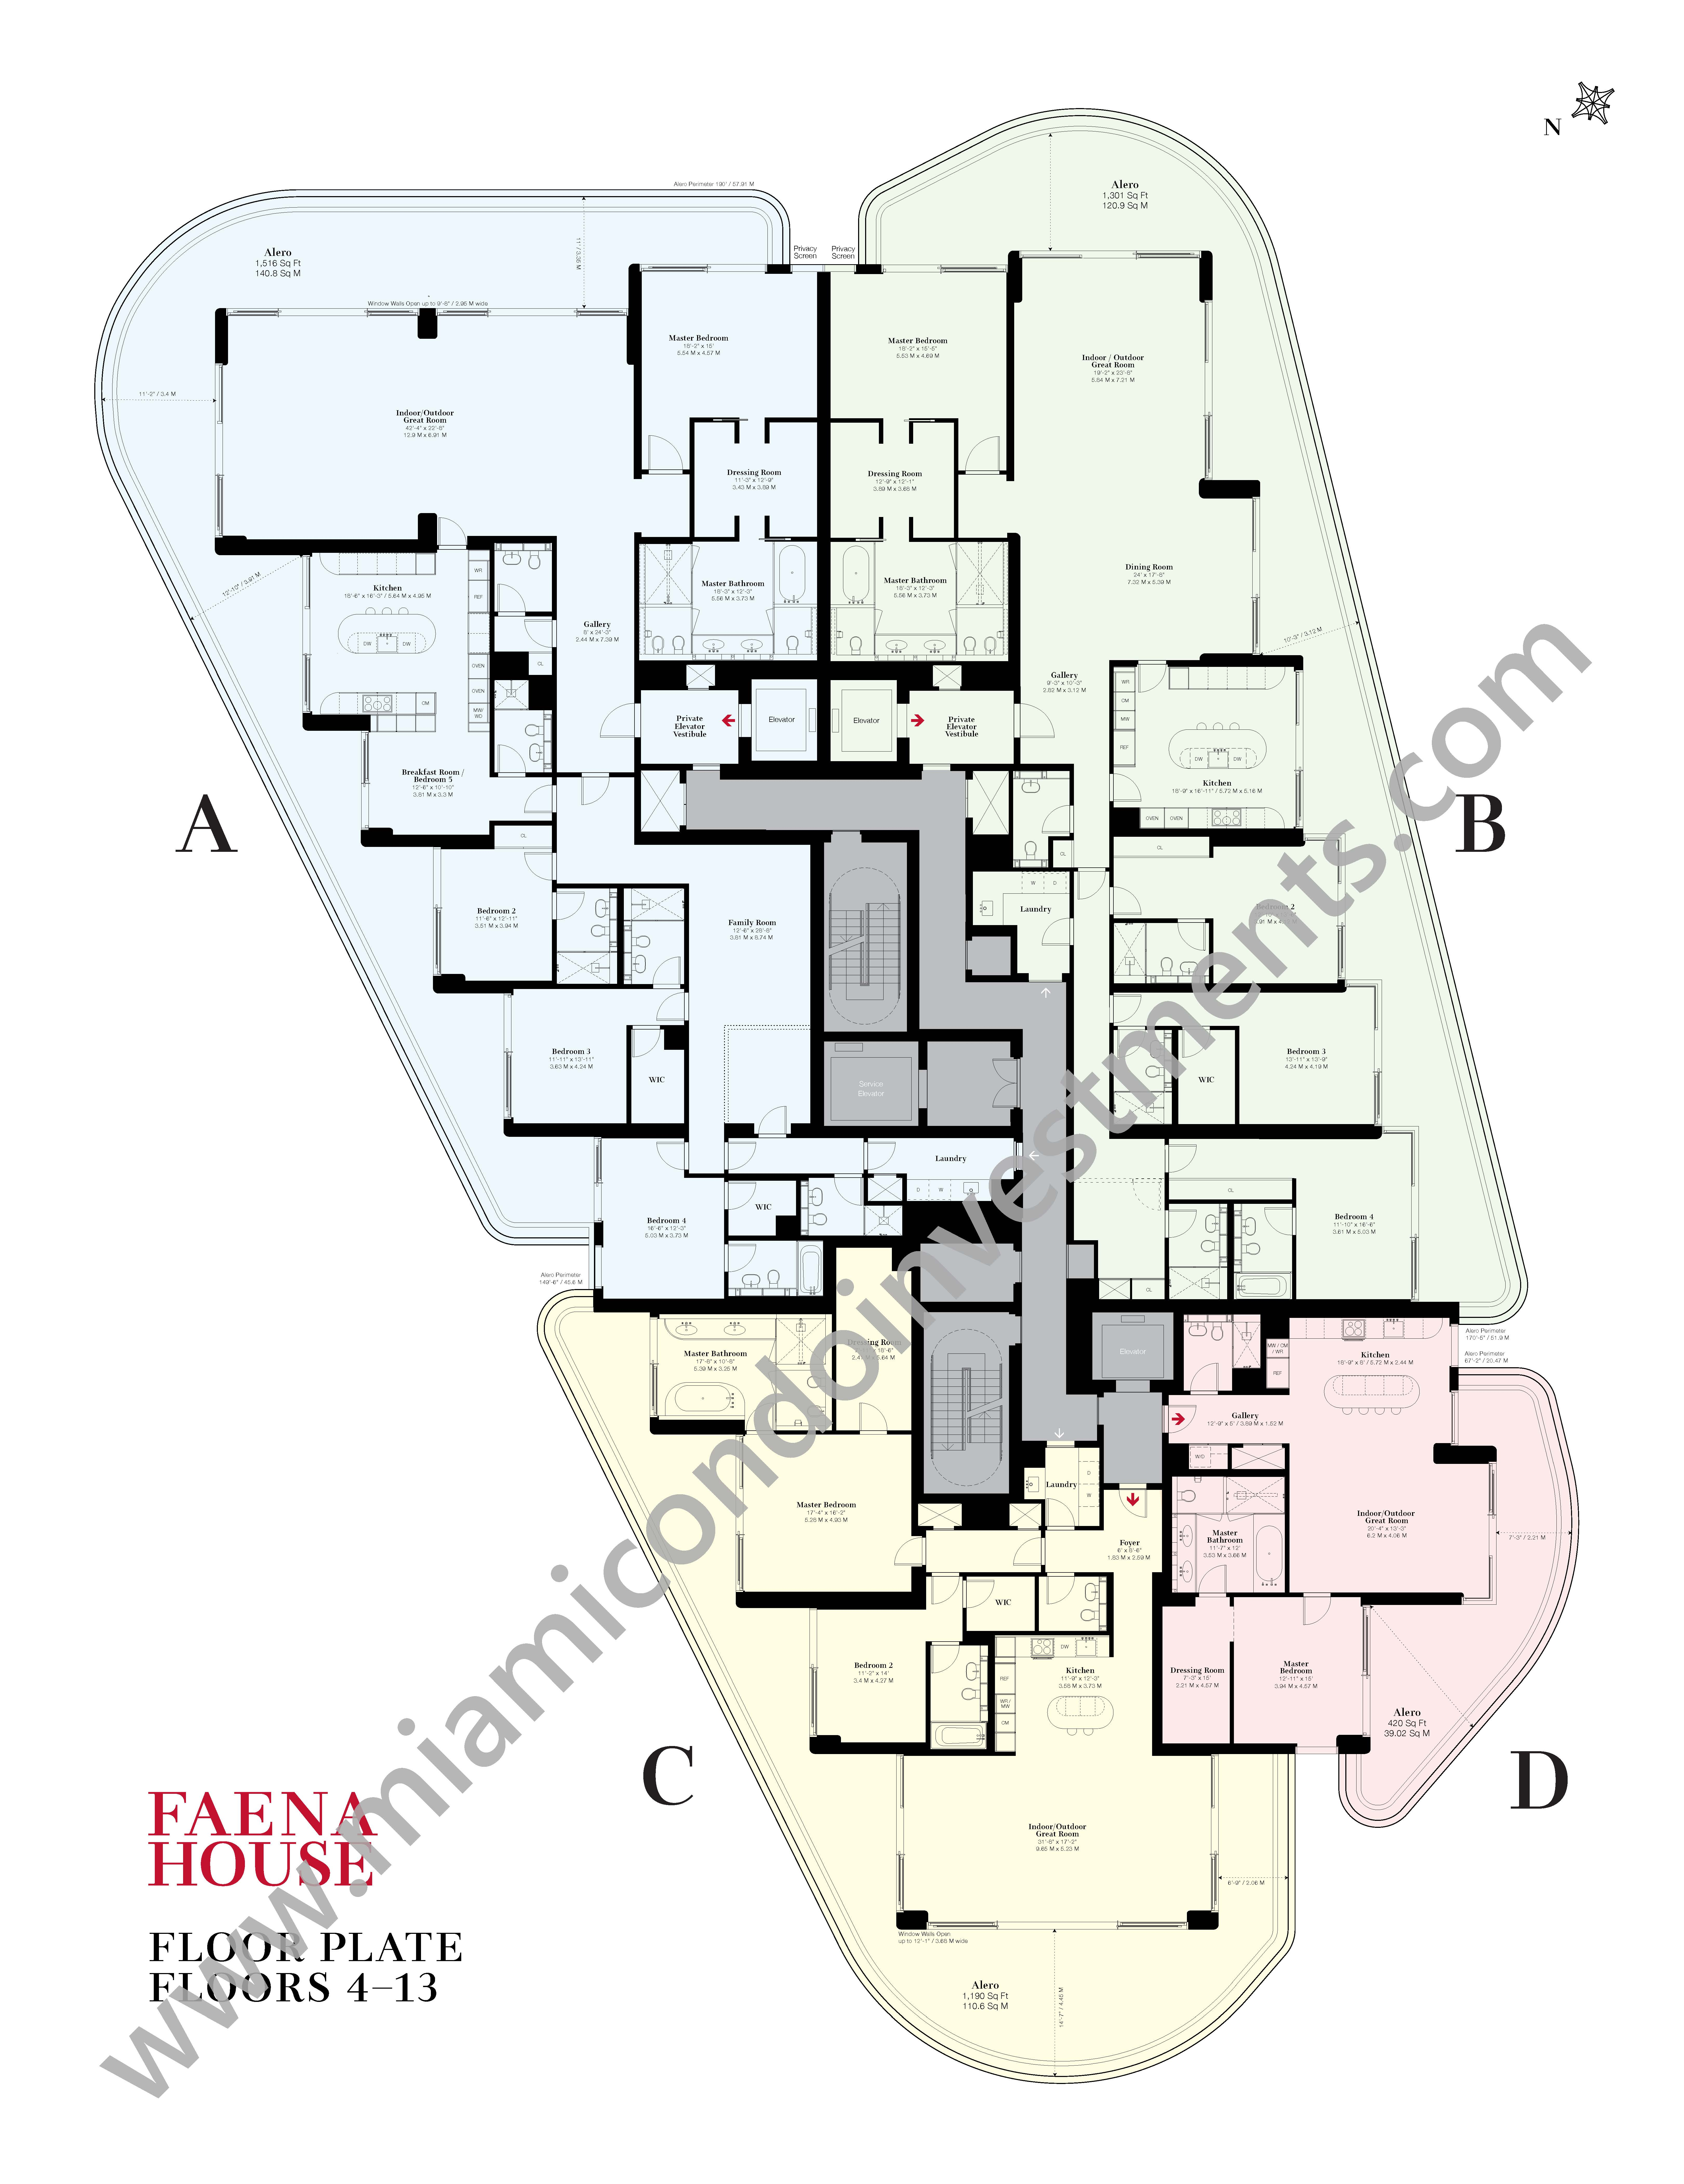 Faena House Site Plan